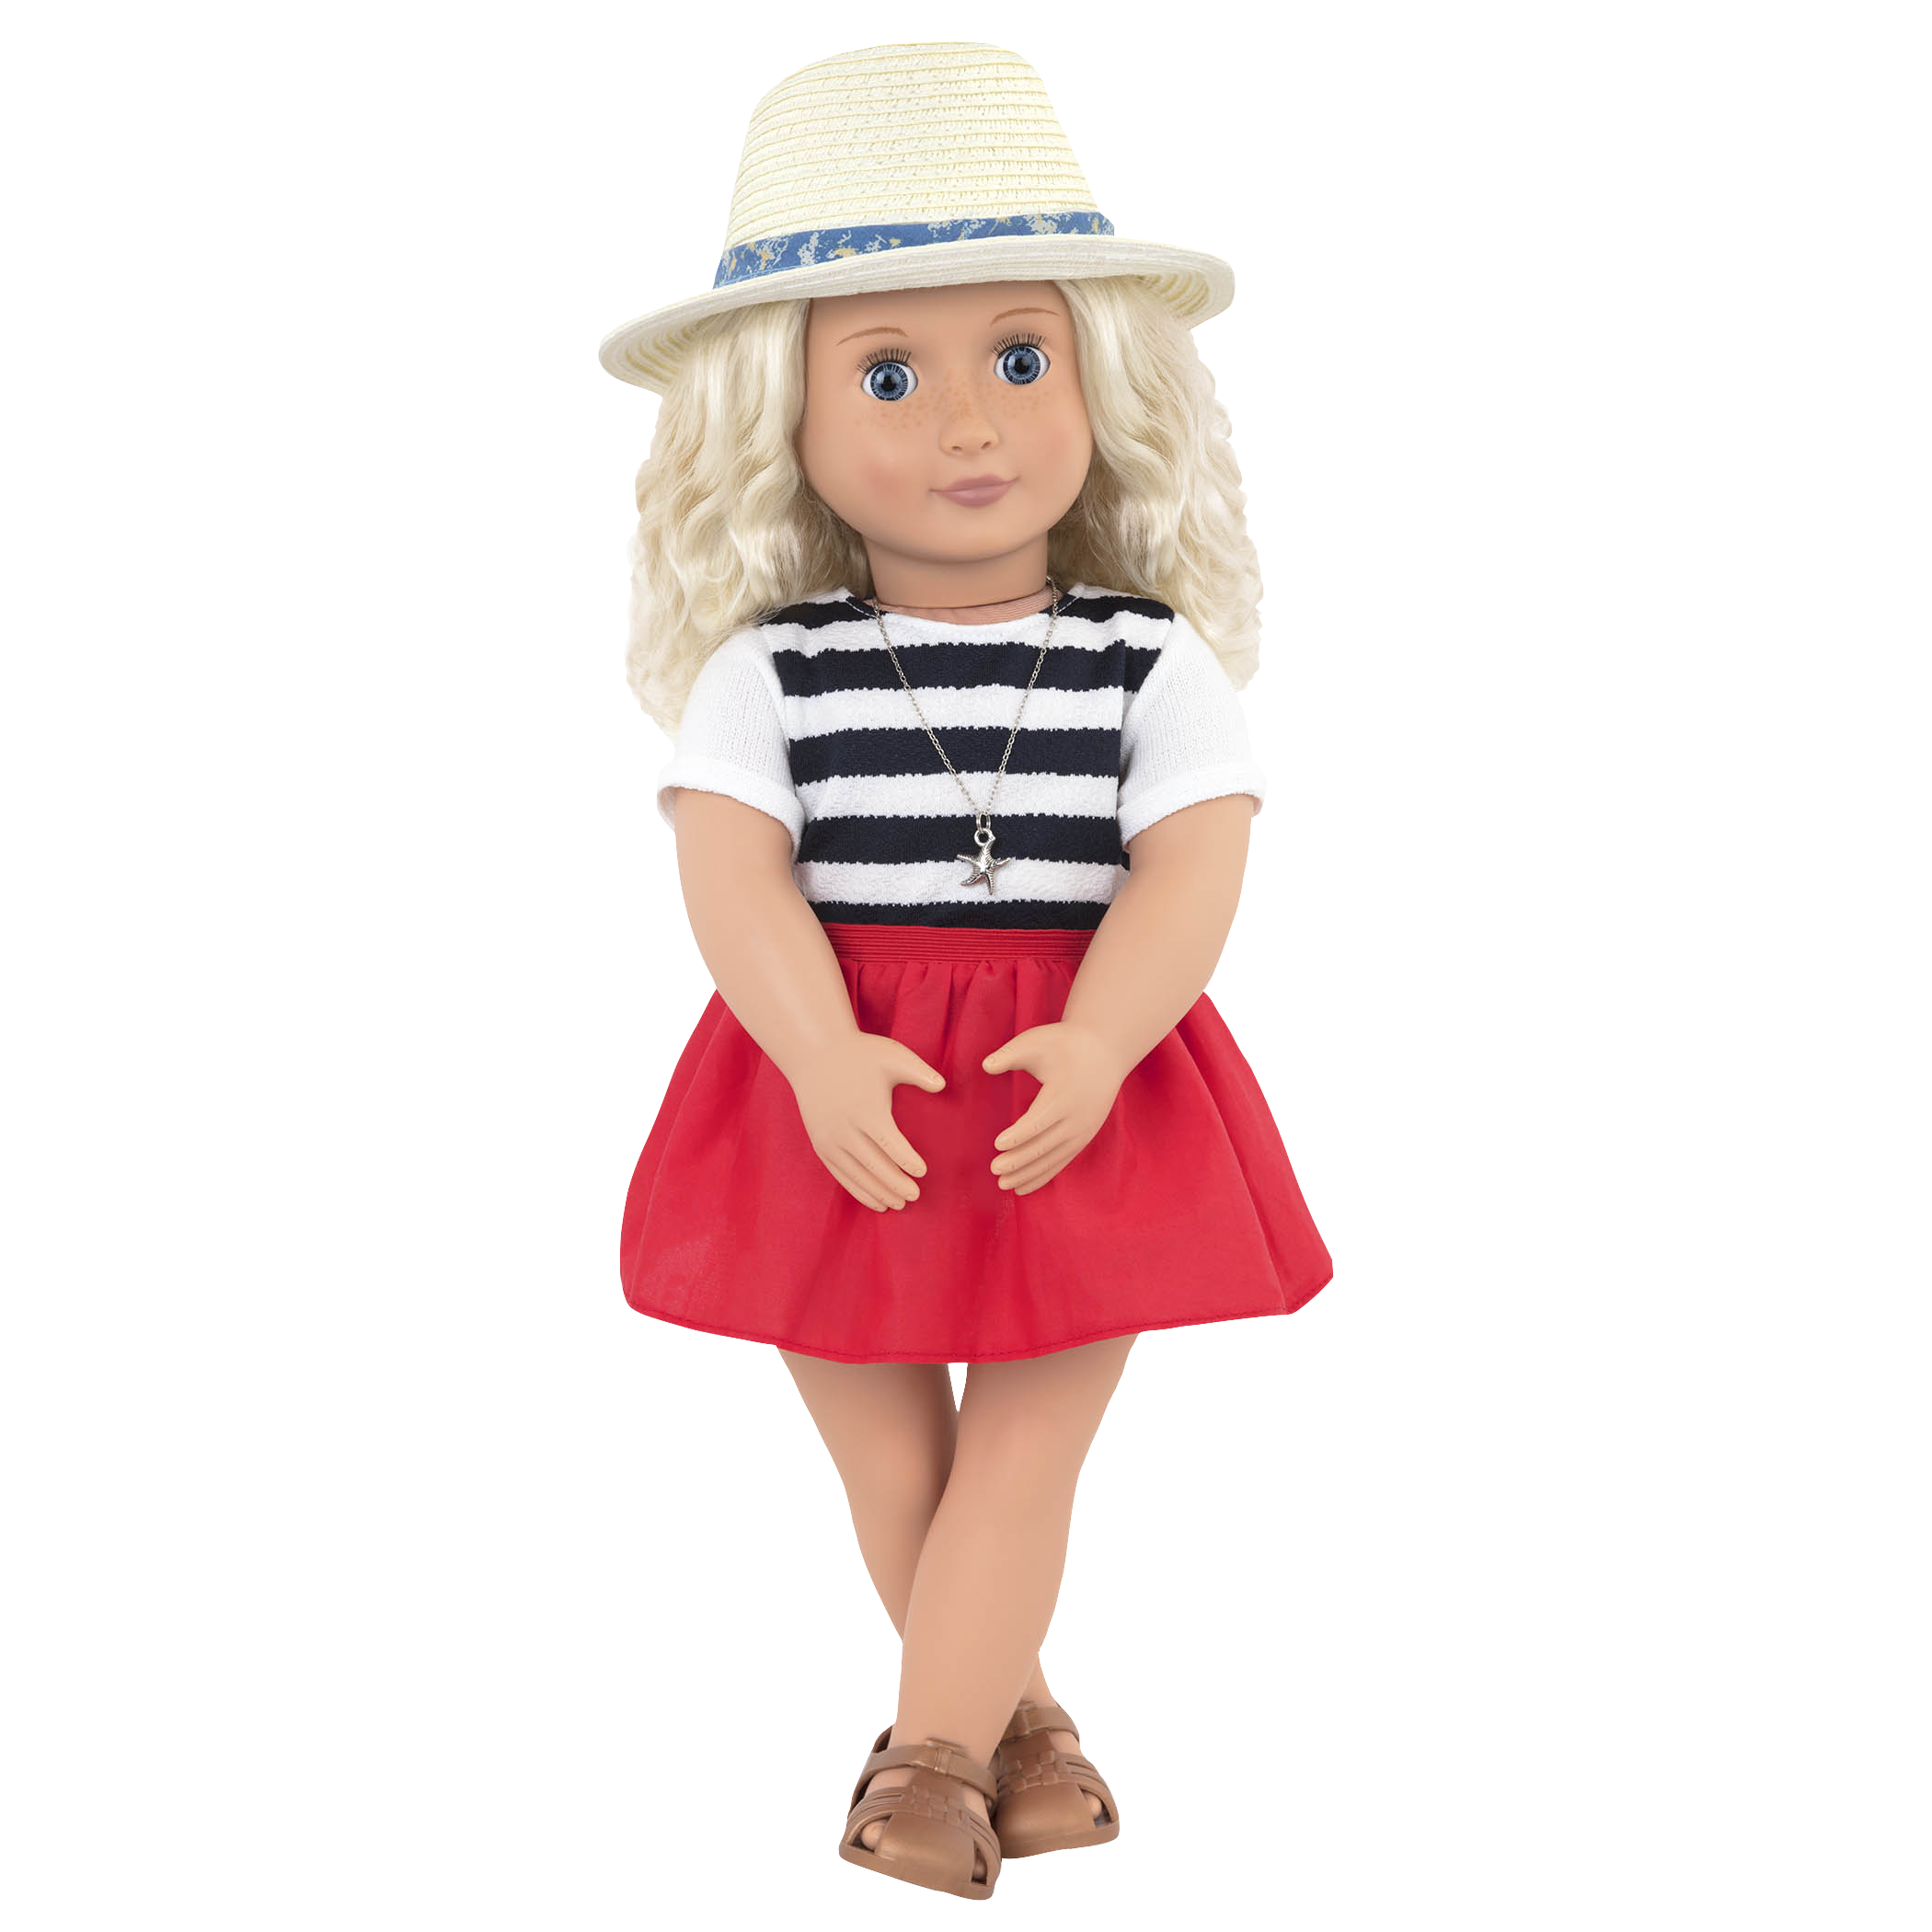 Clarissa 18-inch Doll with Summer Outfit